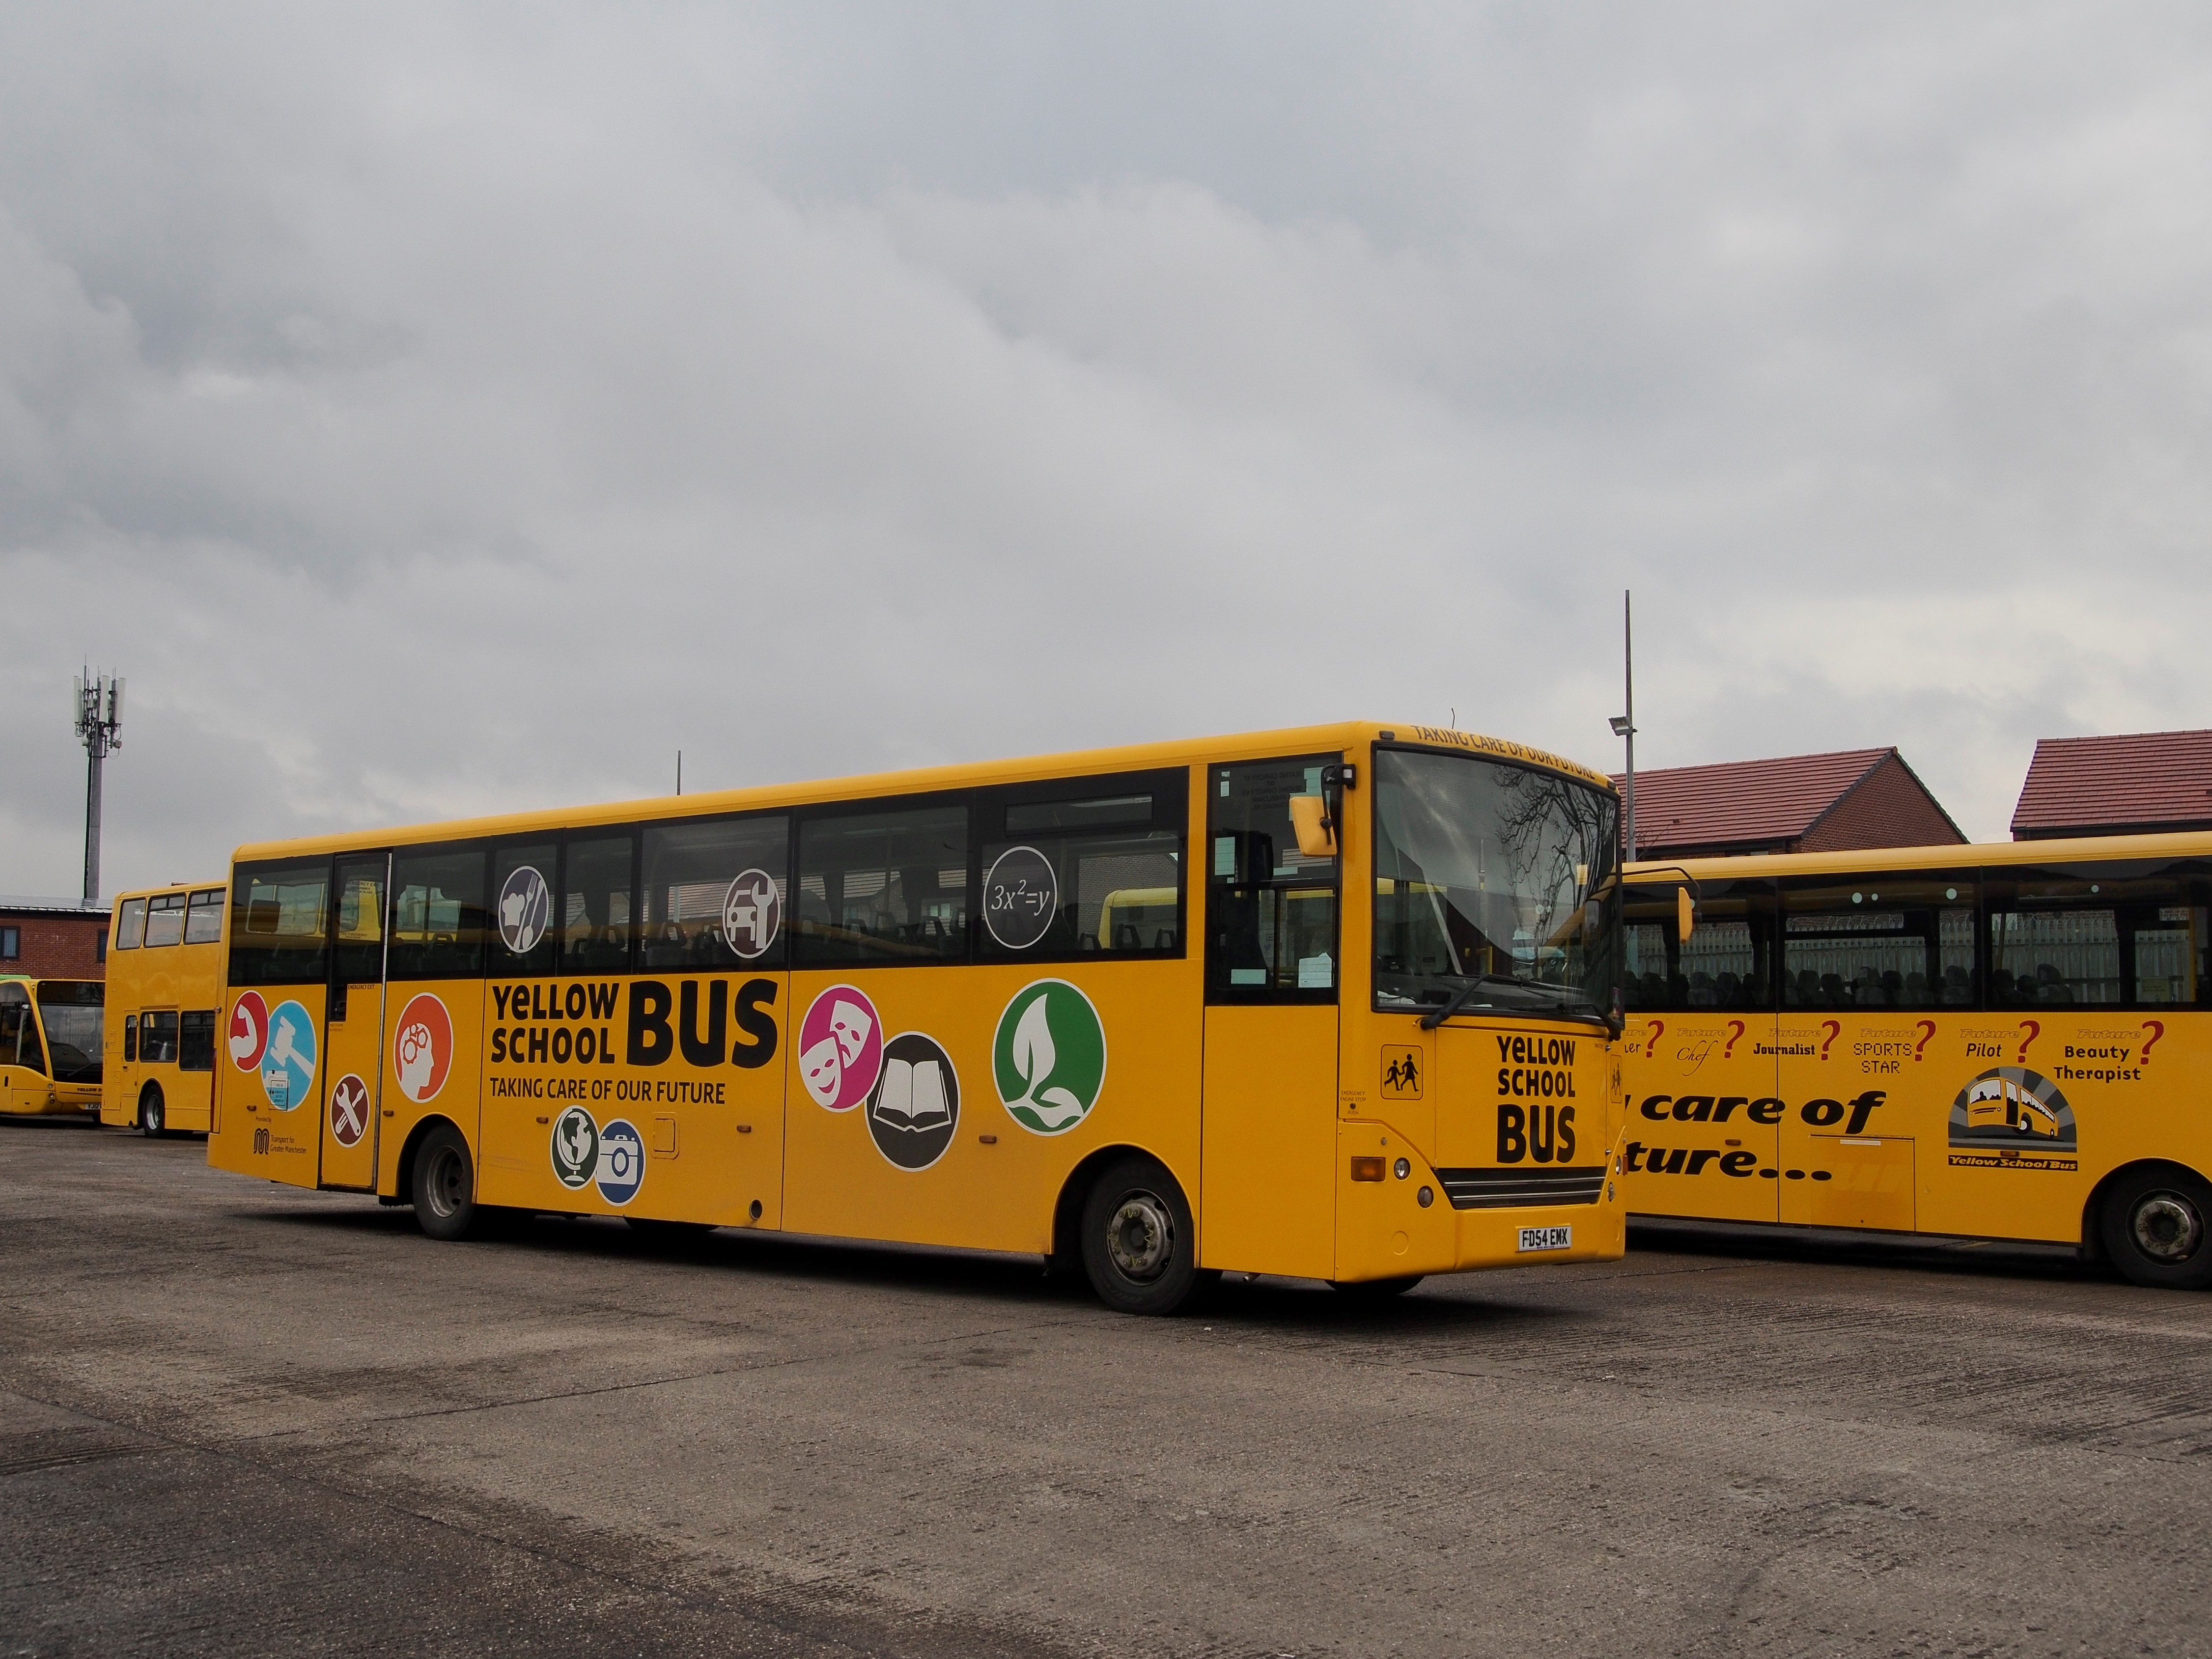 Funding needed for school transport, says Group